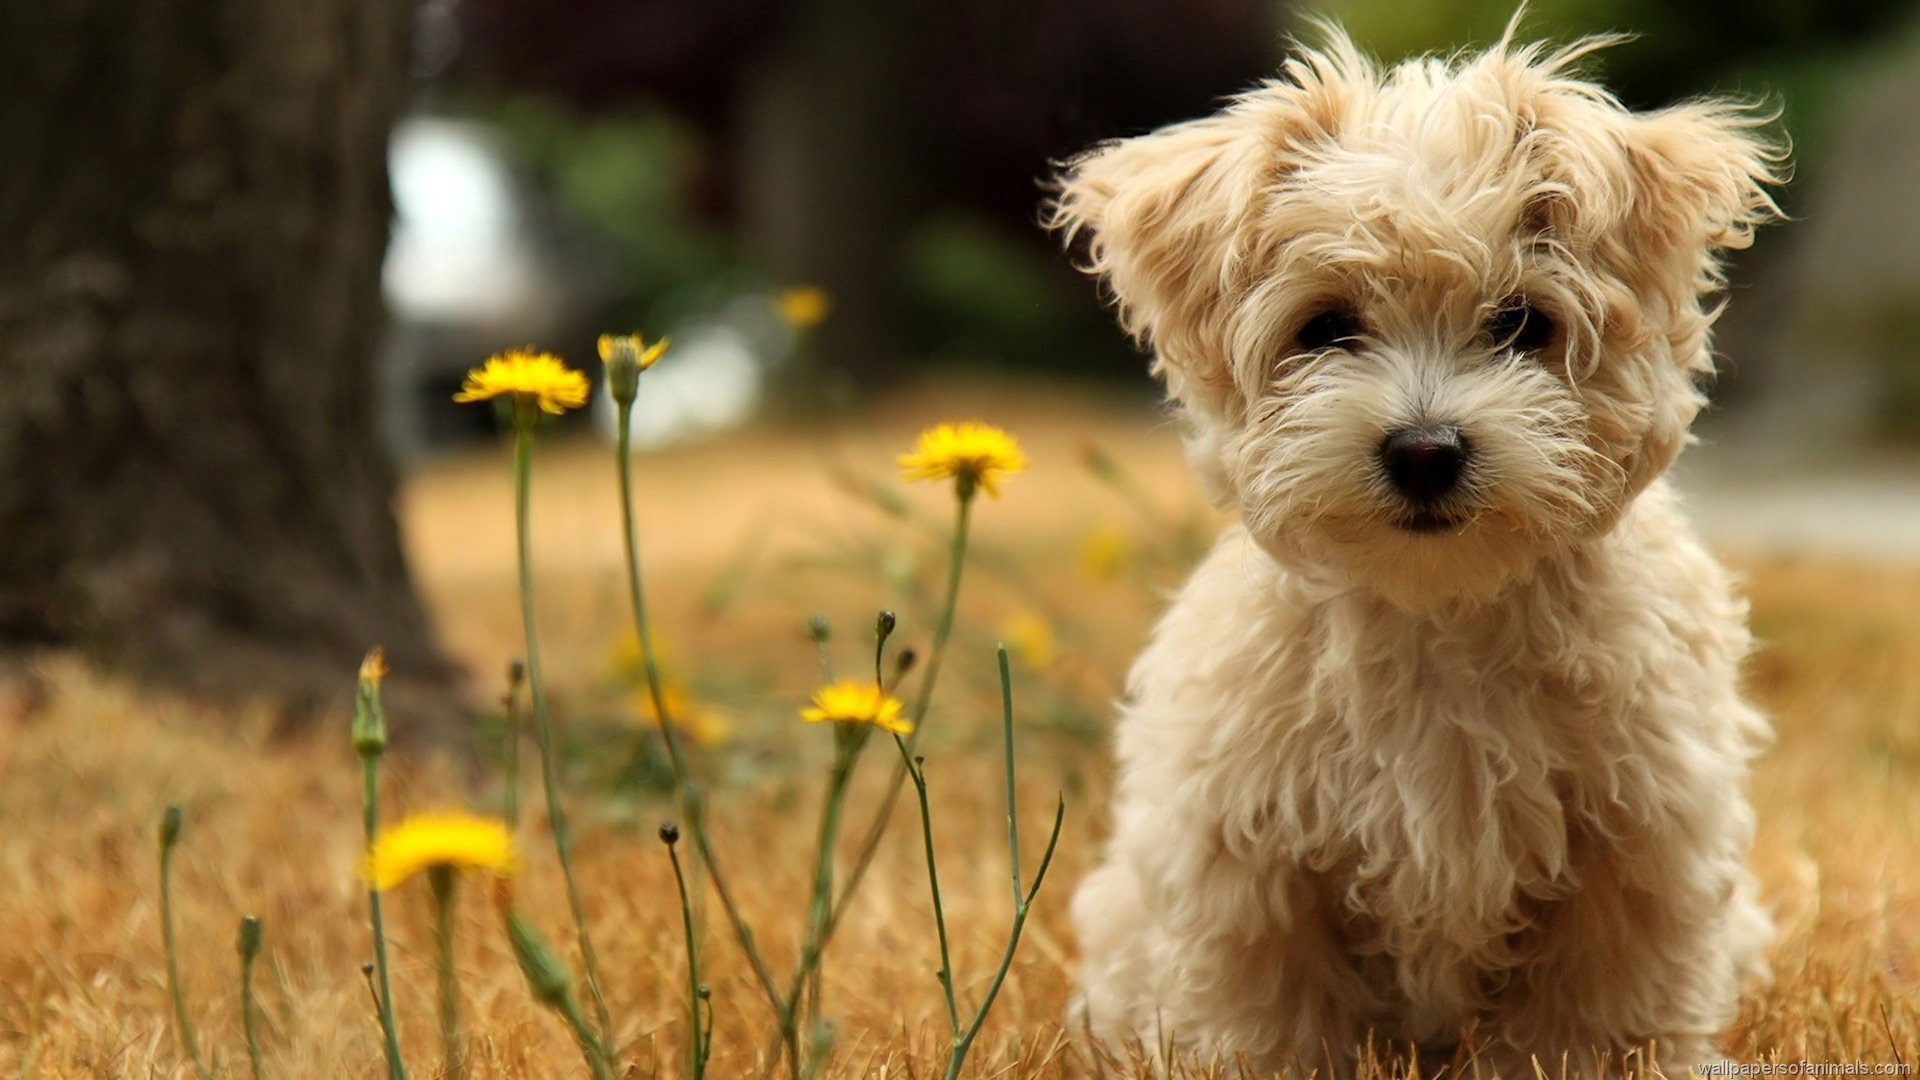 Happy Dog wallpaper | 1920x1080 | #58589 - photo#34